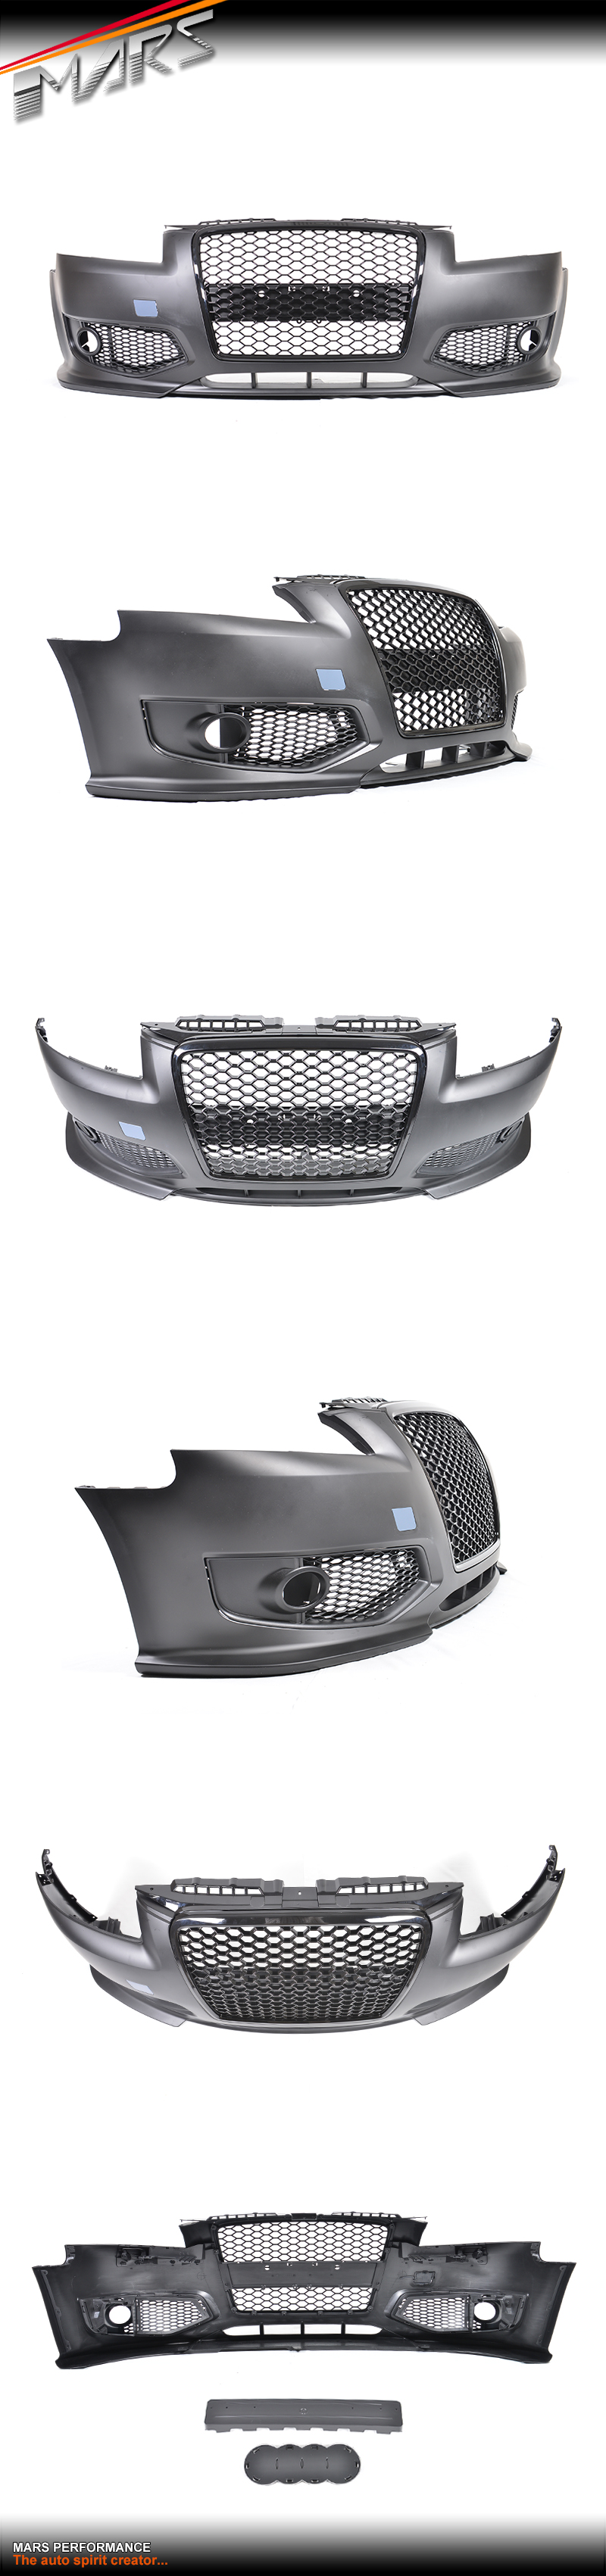 in audi unforgetable aud on with style parts prt kit for product detail buy body alibaba com ld